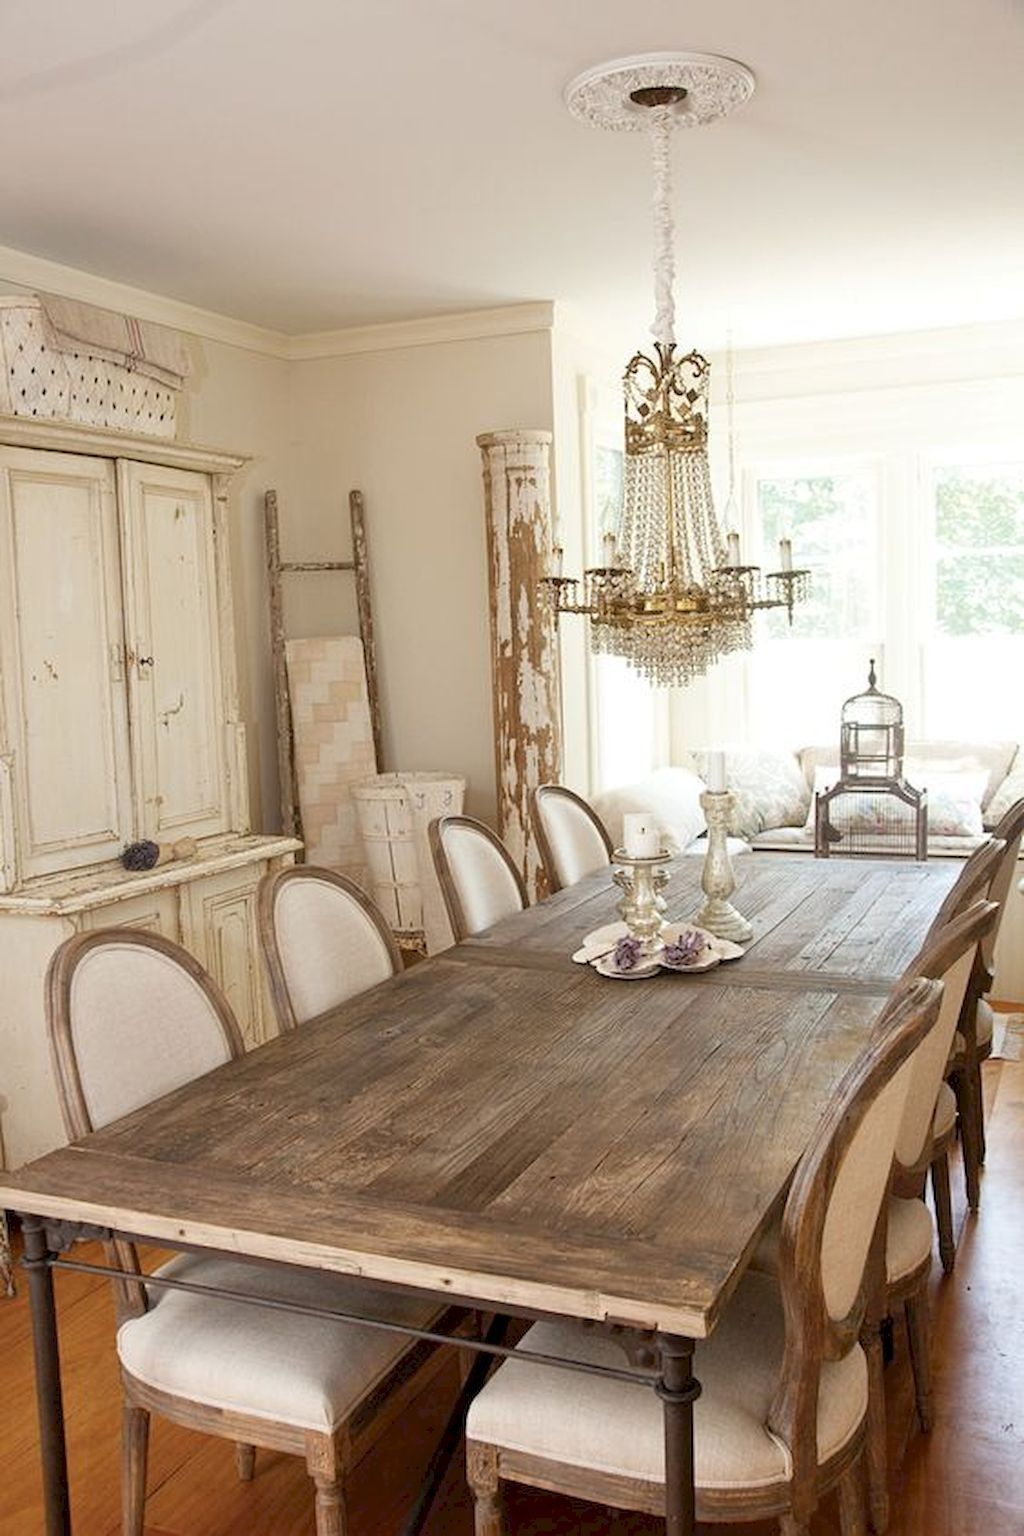 French Country Dining Room Table And Decor Ideas 22  French Glamorous Country French Dining Room Set Design Inspiration